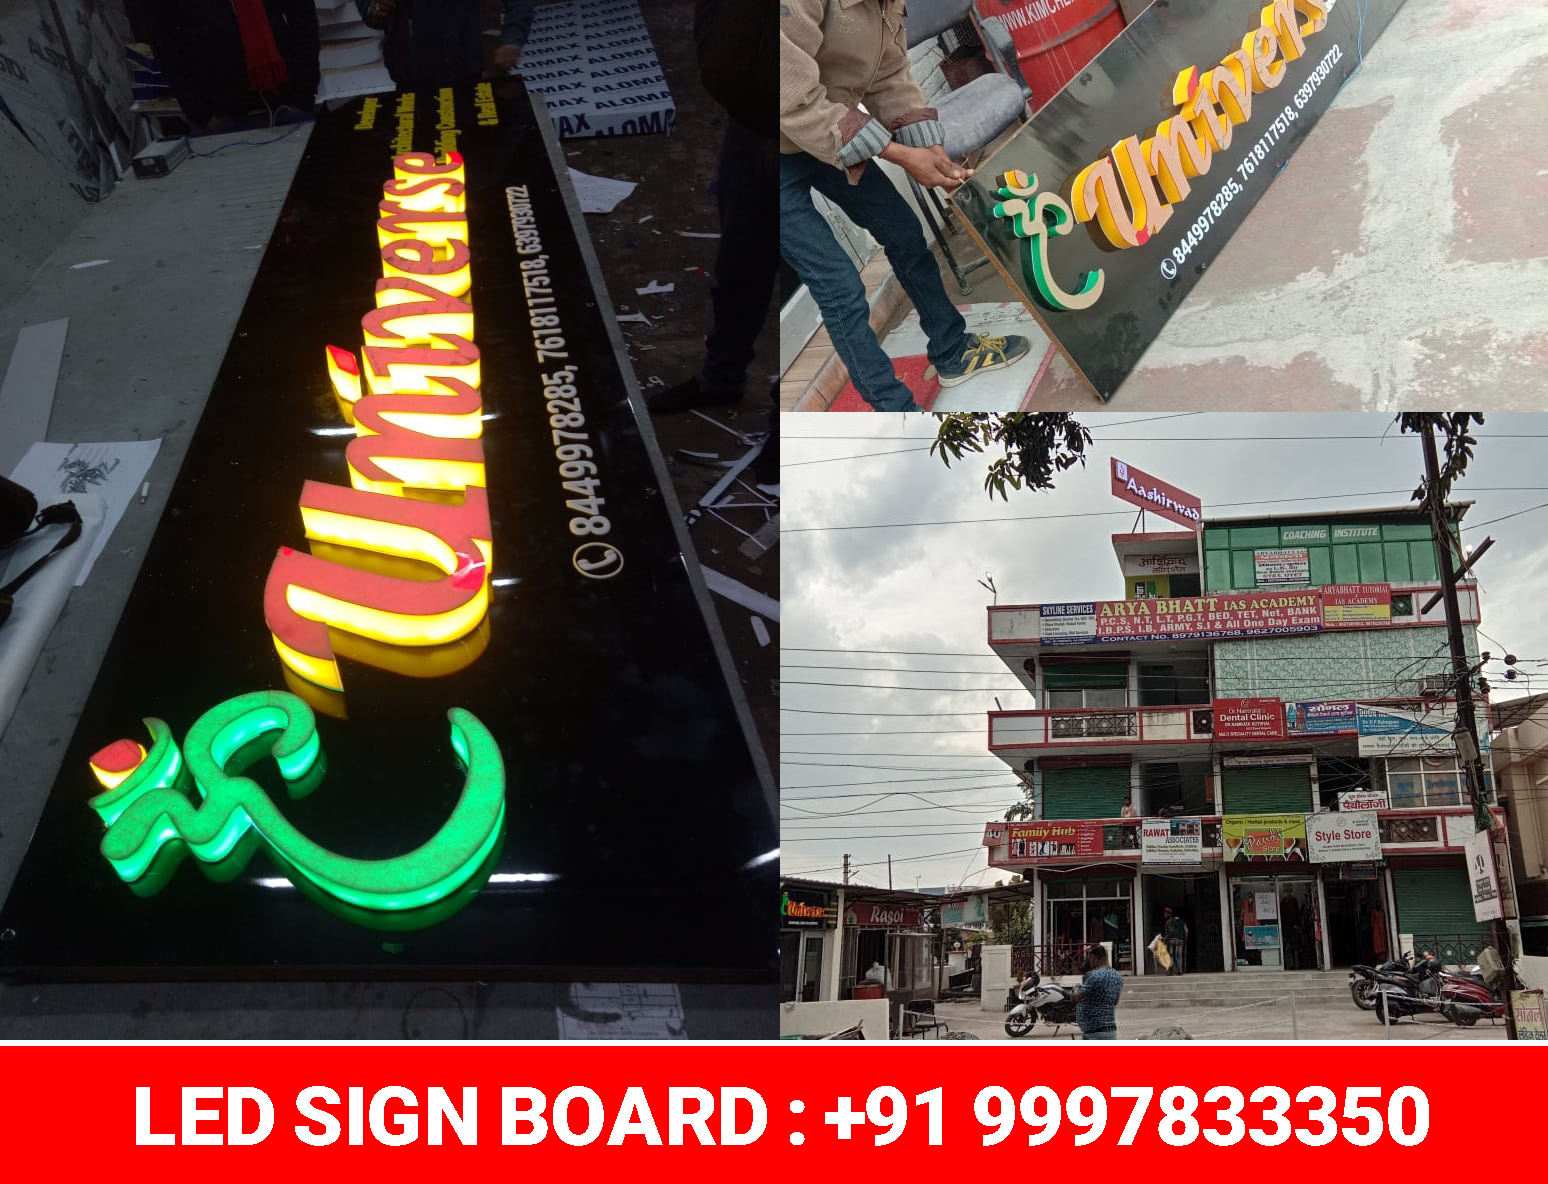 LED SIGN Board for Jogiwala Complex in Dehradun